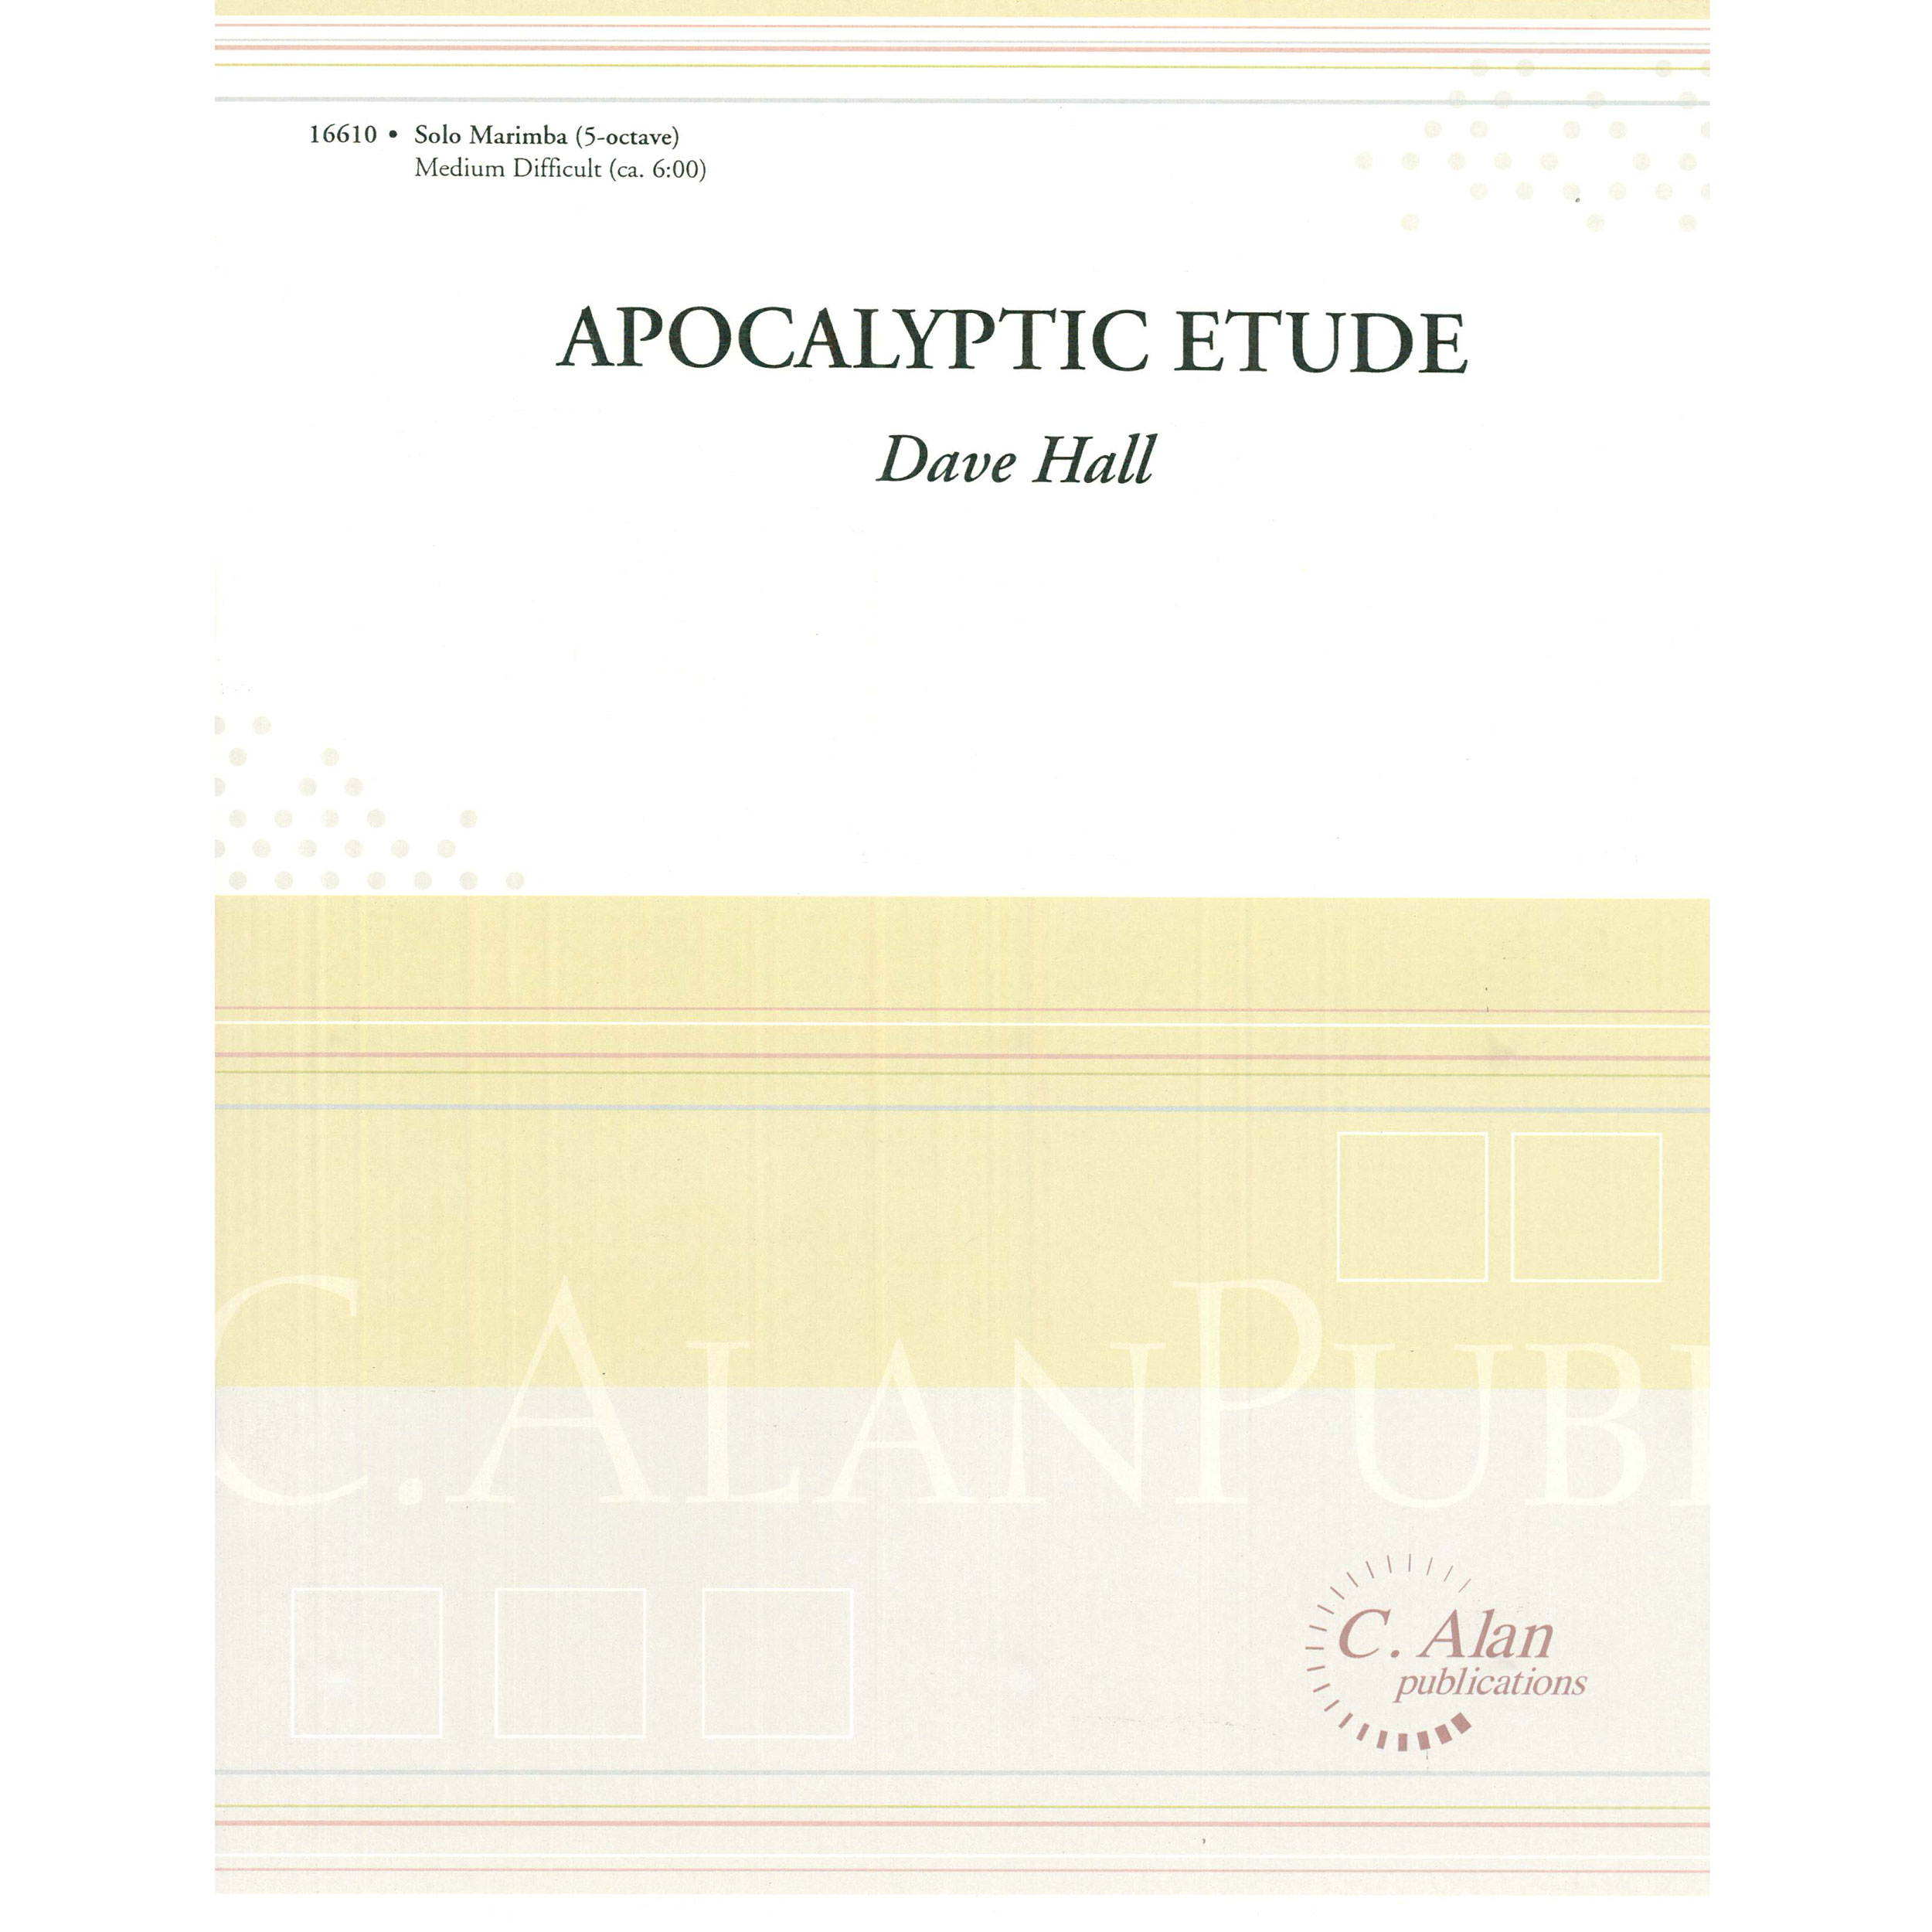 Apocalyptic Etude by Dave Hall